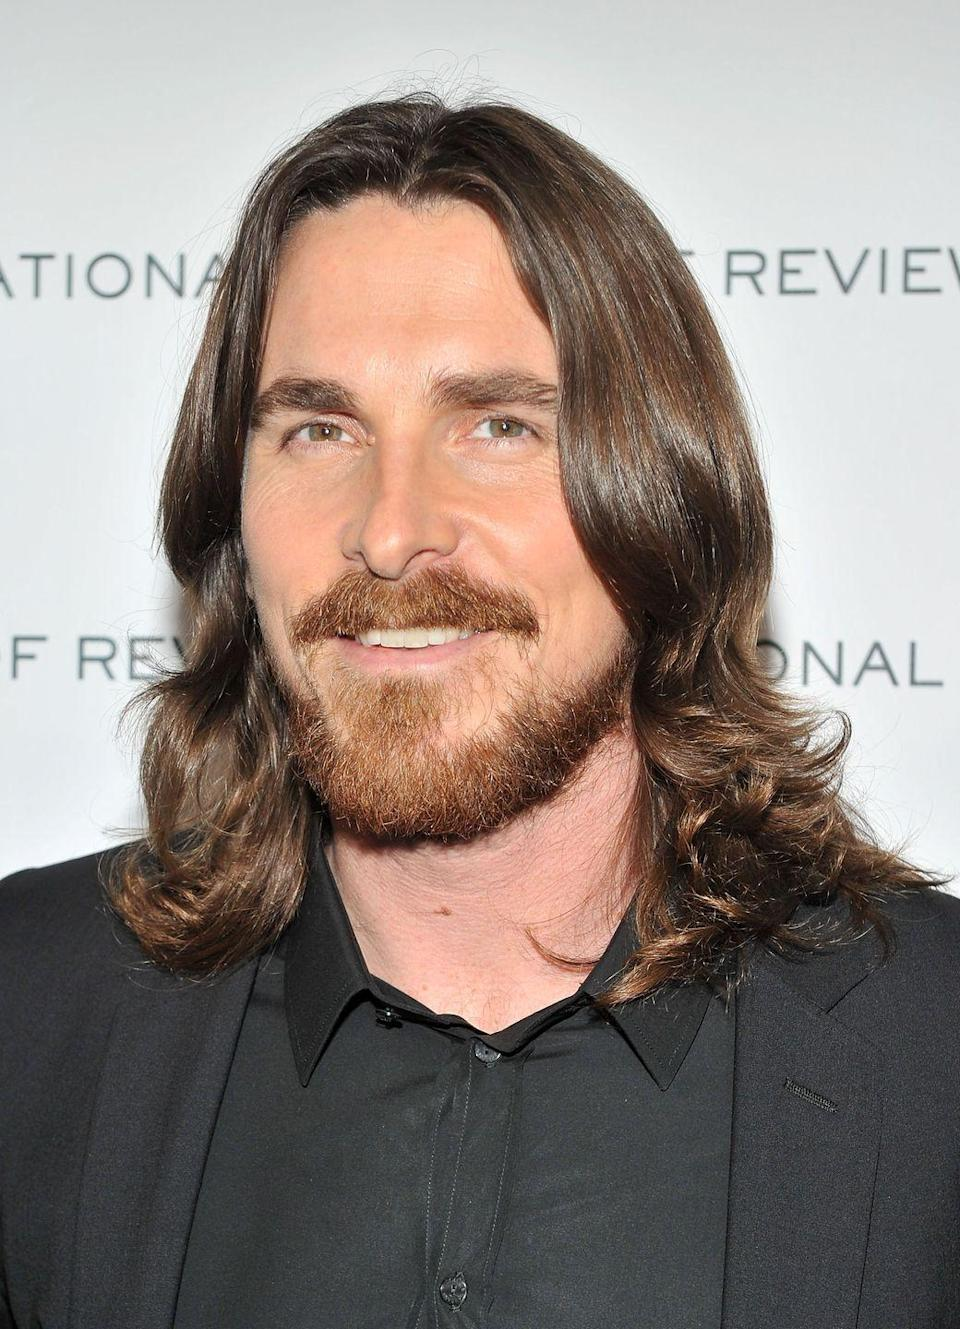 <p>In 2011, Christian Bale piqued everyone's interest when he debuted a full beard and long hair at the Golden Globe Awards. Surprisingly, the actor who's famous for taking on dramatic transformations for roles wasn't growing it out for a movie, he was just enjoying a break between projects. </p>